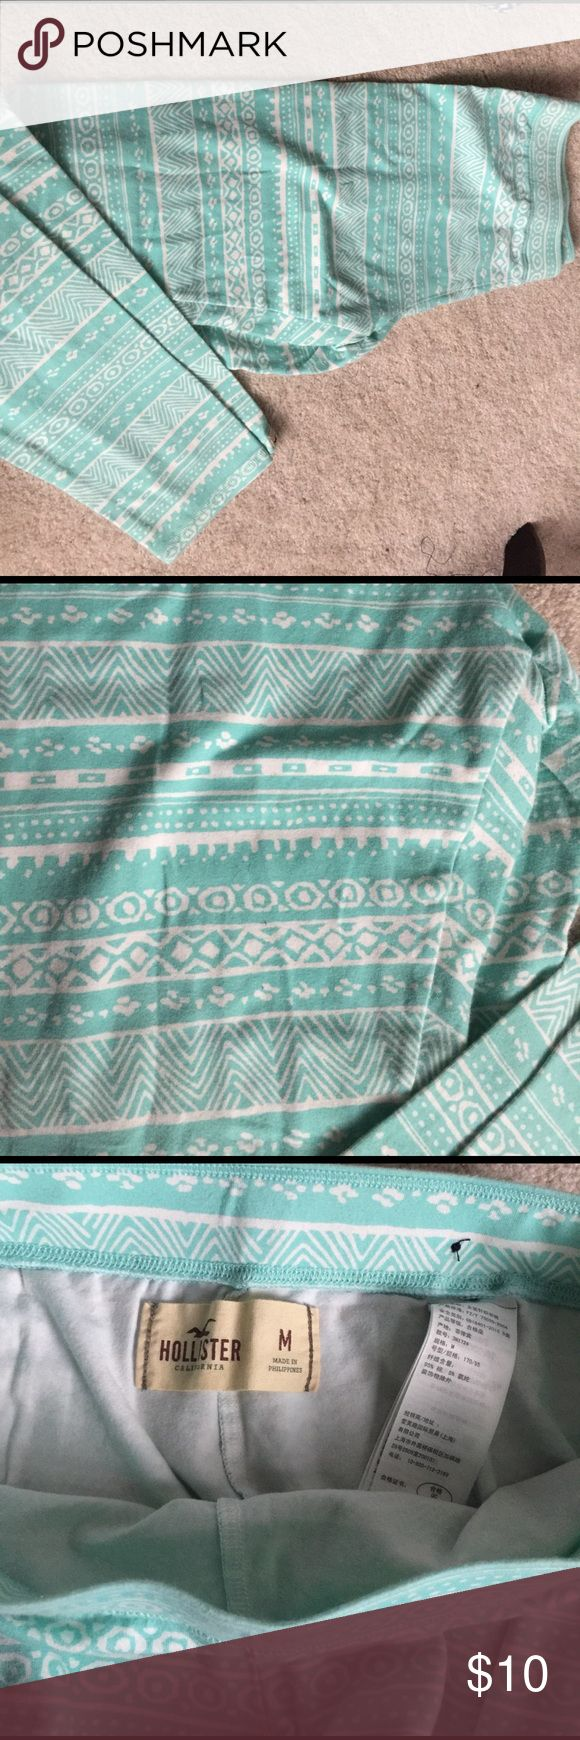 Hollister leggings! Beautiful aqua and white leggings from Hollister! Excellent condition and perfect for the spring! Hollister Pants Leggings